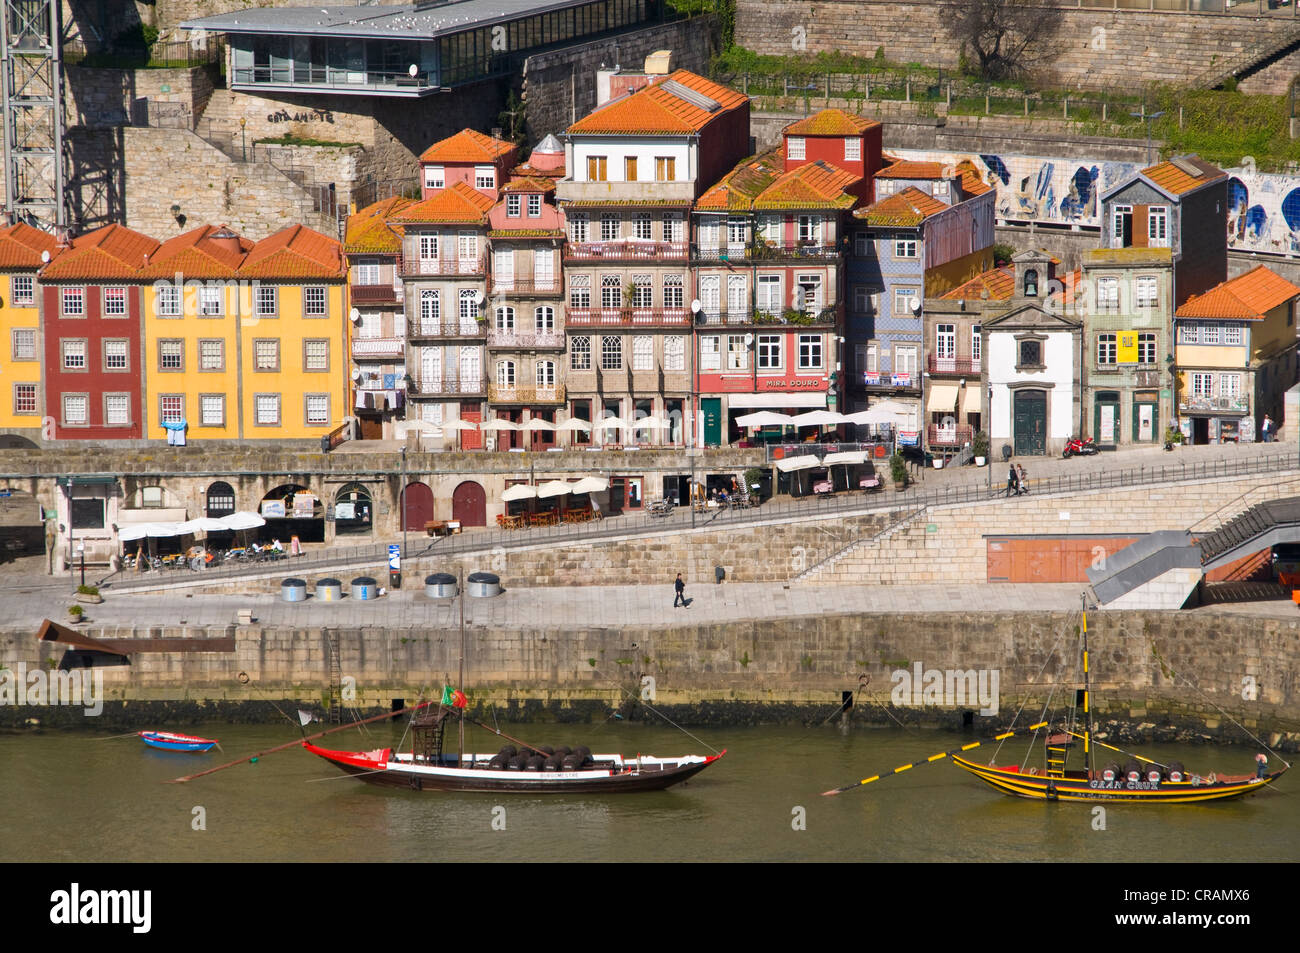 Buildings on the banks of Rio Douro, Porto, Portugal, Europe - Stock Image